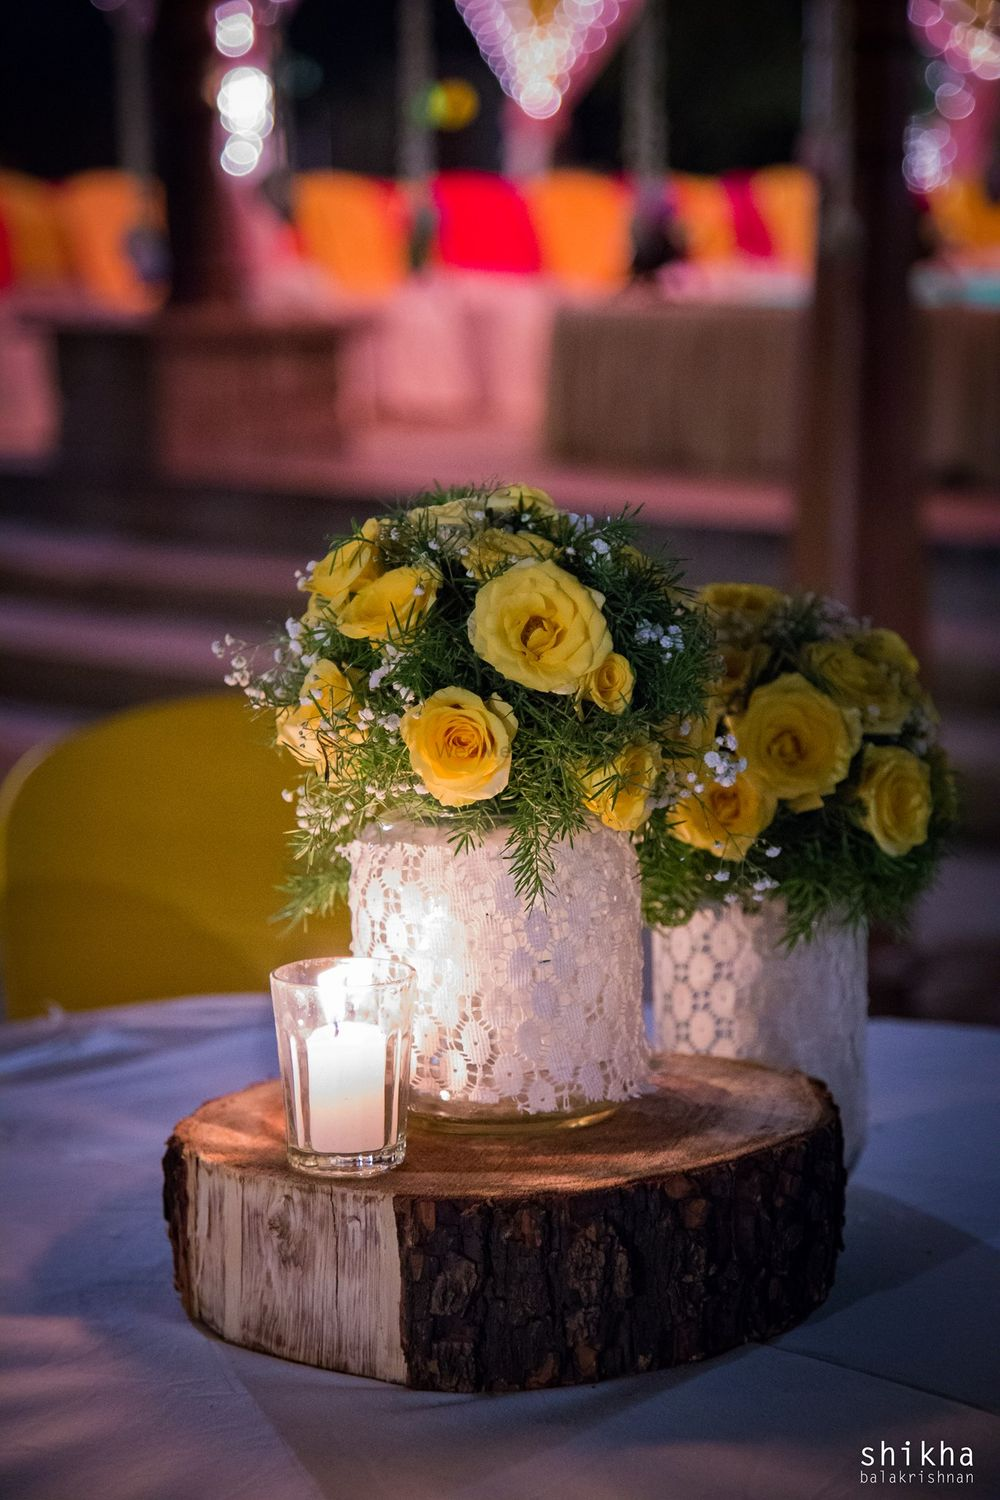 Photo of Mason jar with lace and flowers as centrepiece